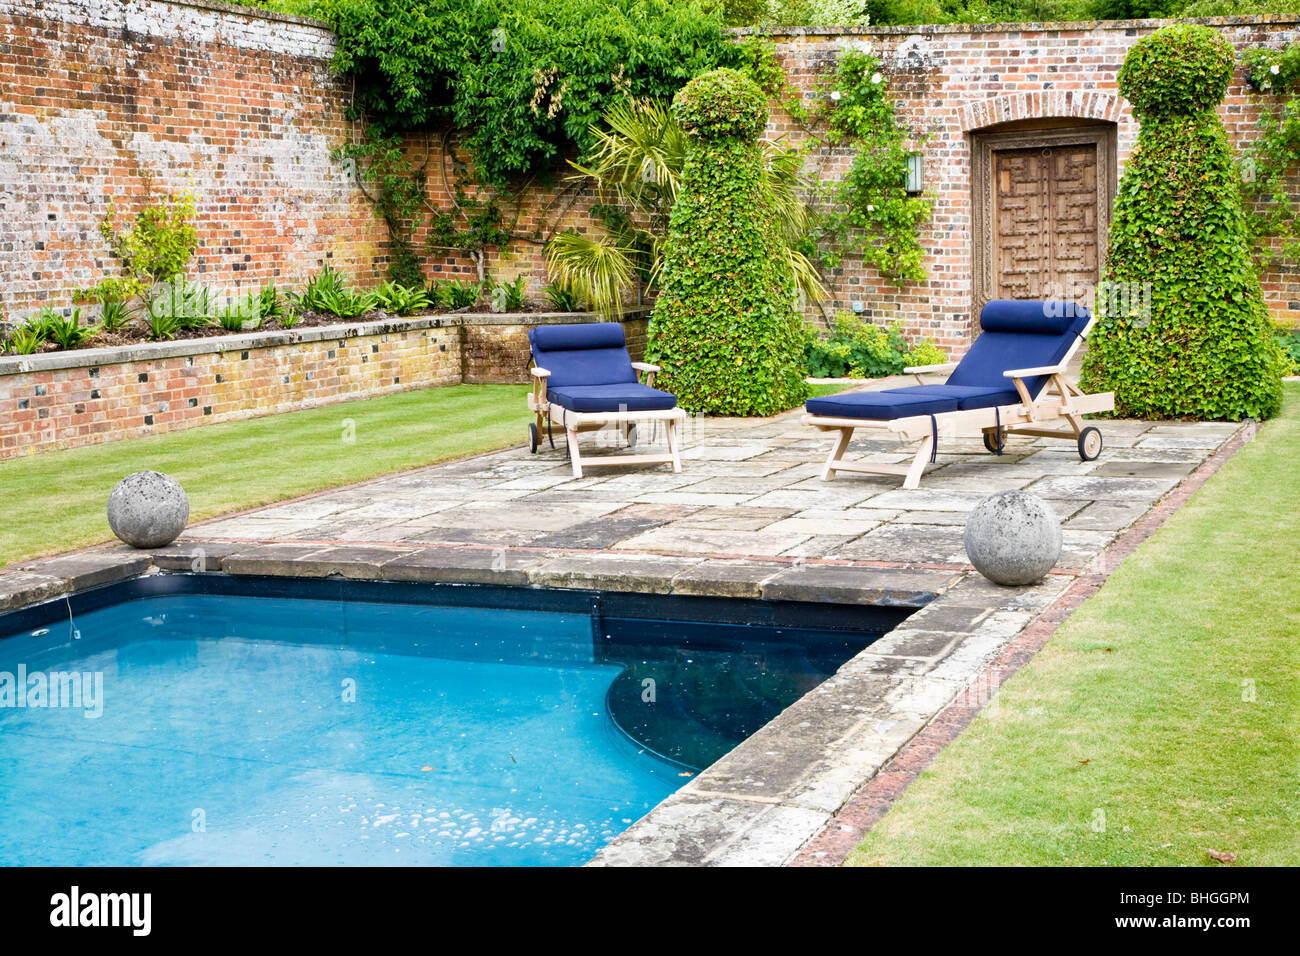 Charmant Swimming Pool In A Walled Garden In The Grounds Of An English Country  House.